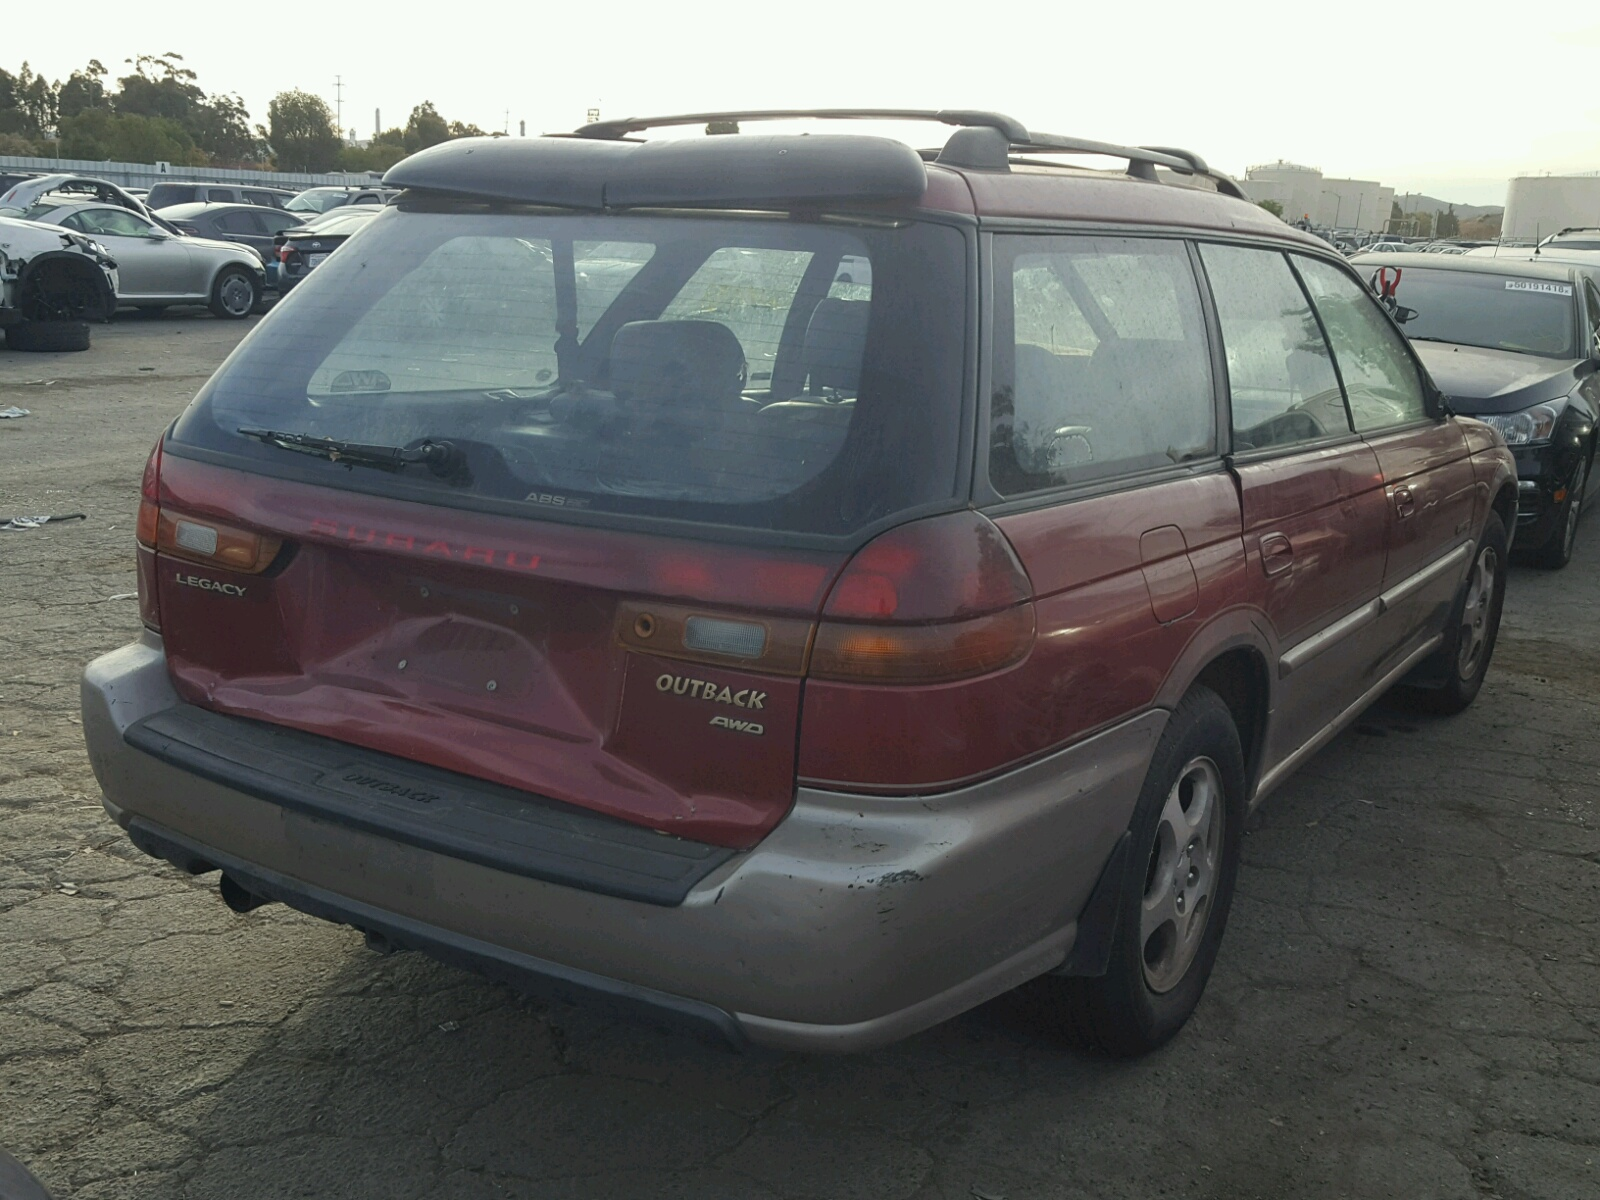 1998 Subaru Legacy 30t For Sale At Copart Martinez Ca Lot 49273348 Outback